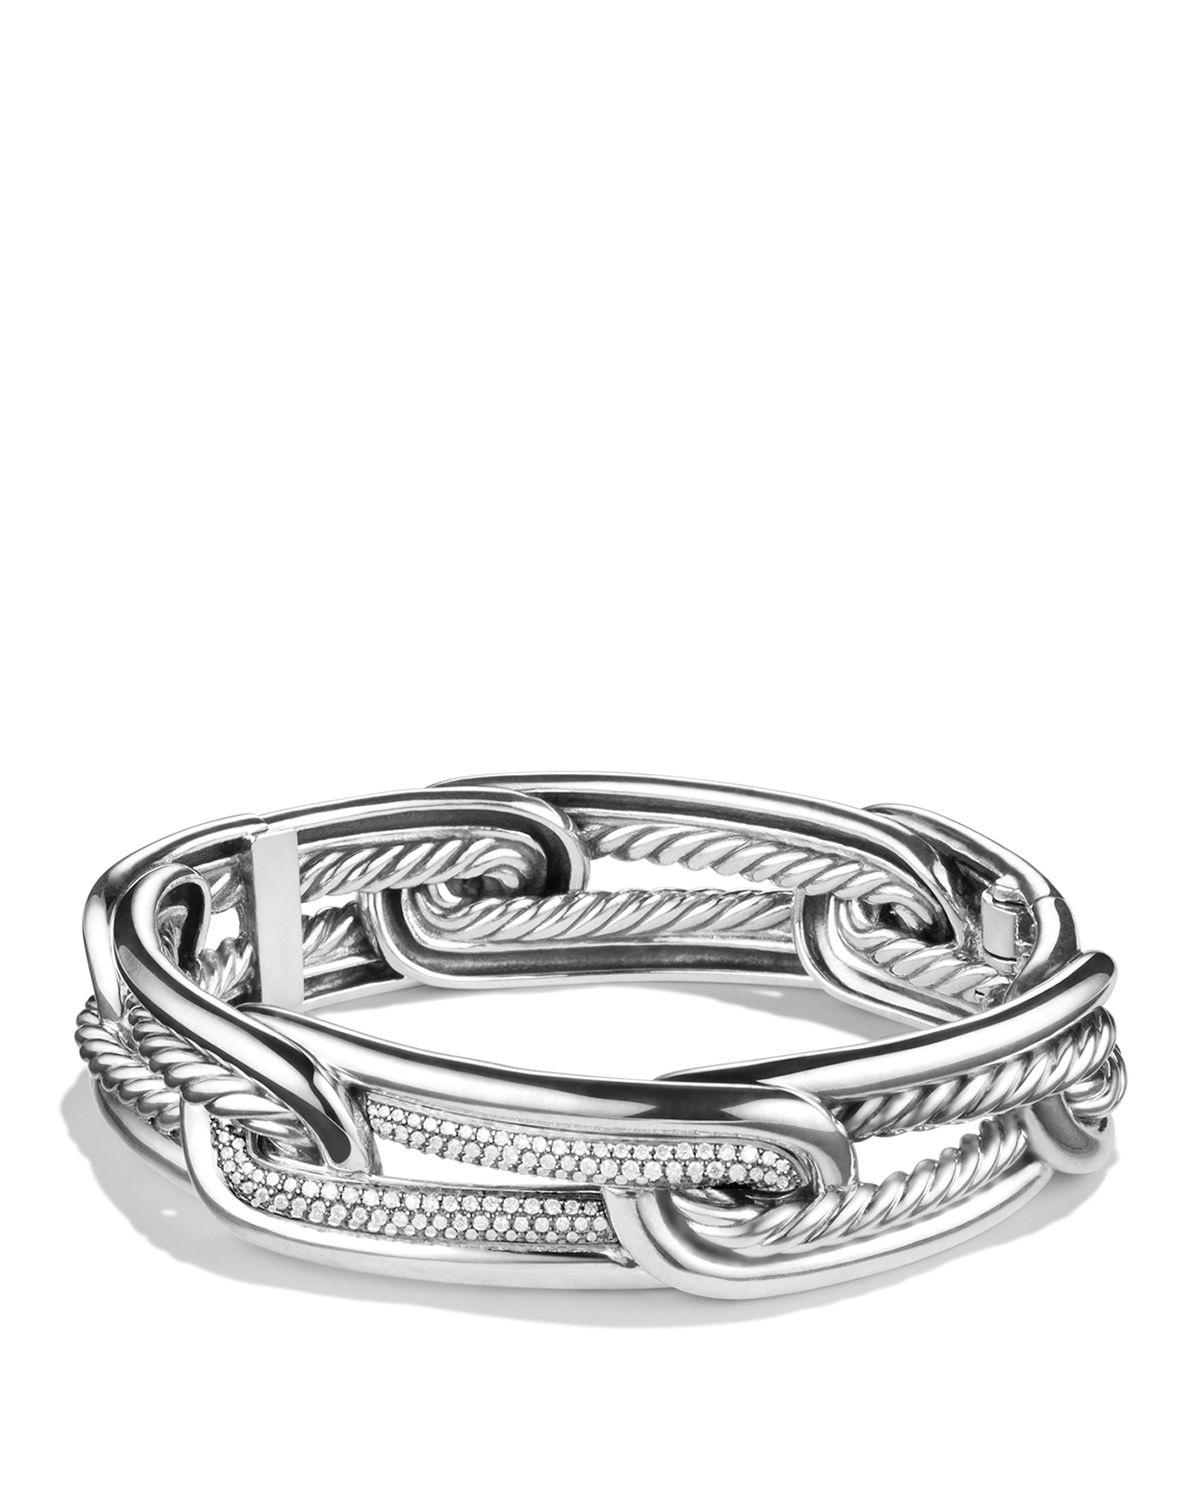 David Yurman Charm Bracelet: David Yurman Labyrinth Link Bracelet With Diamonds